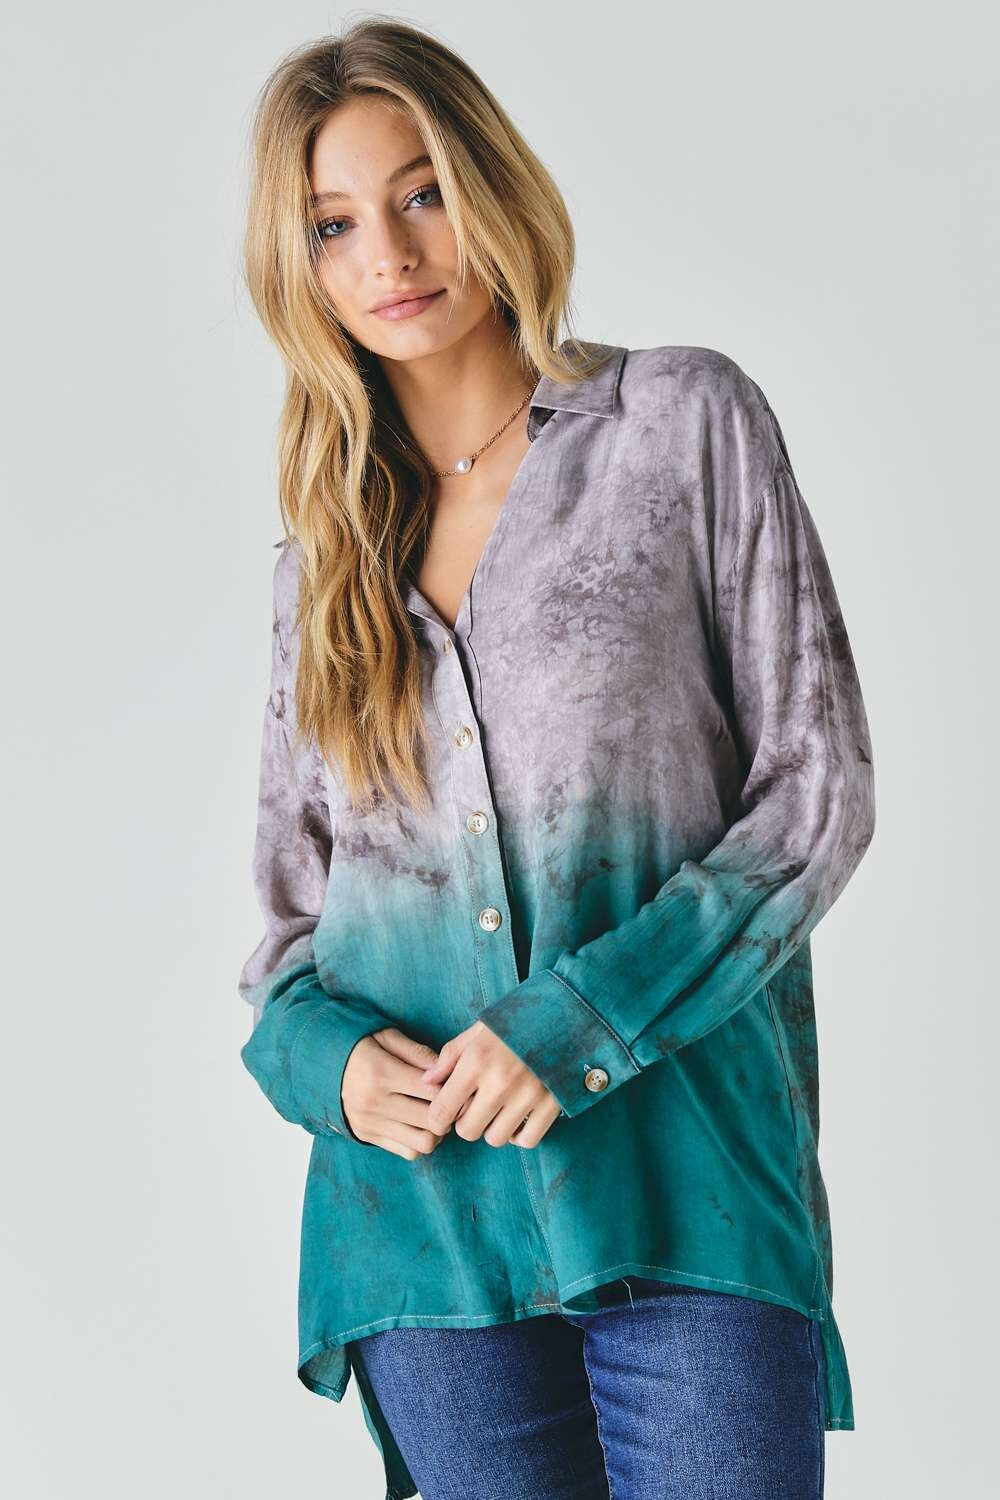 Ombre Button Down Collared - 1 Small Left!!